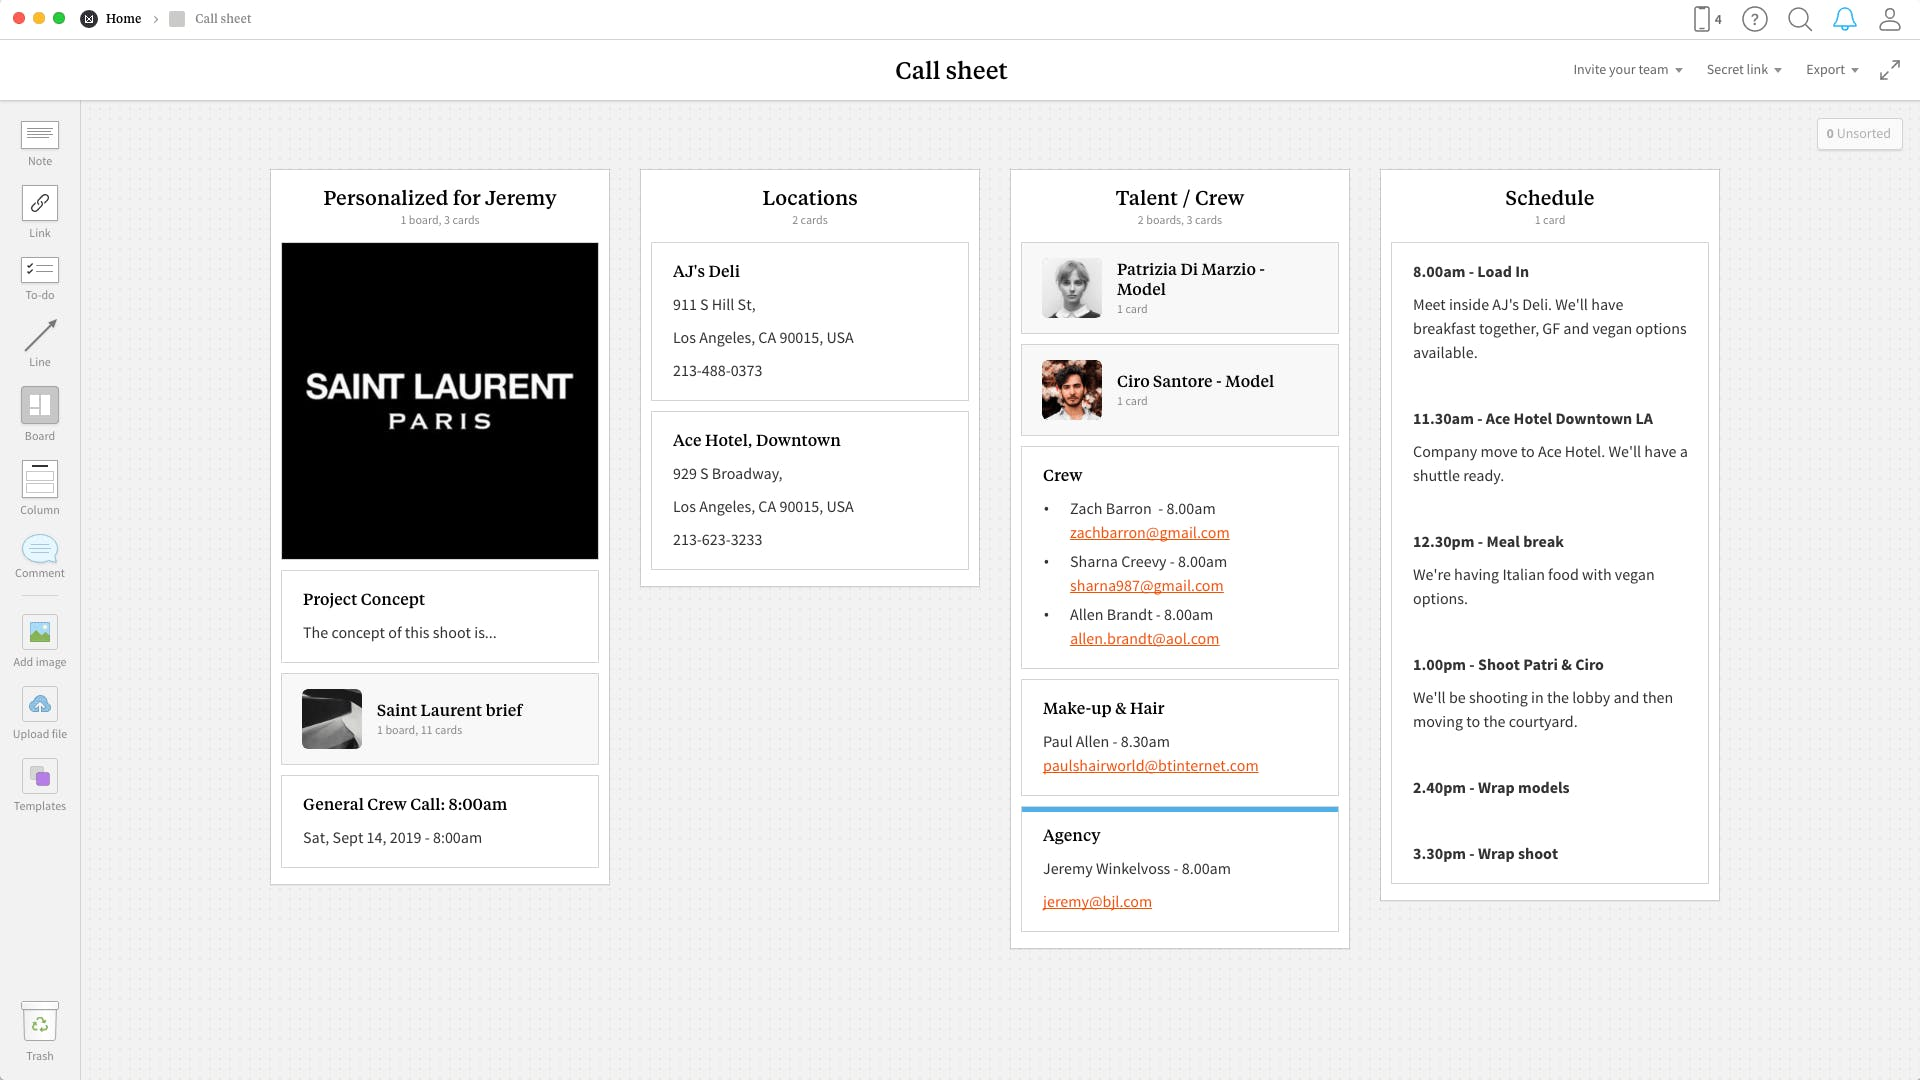 Completed Call Sheet template in Milanote app